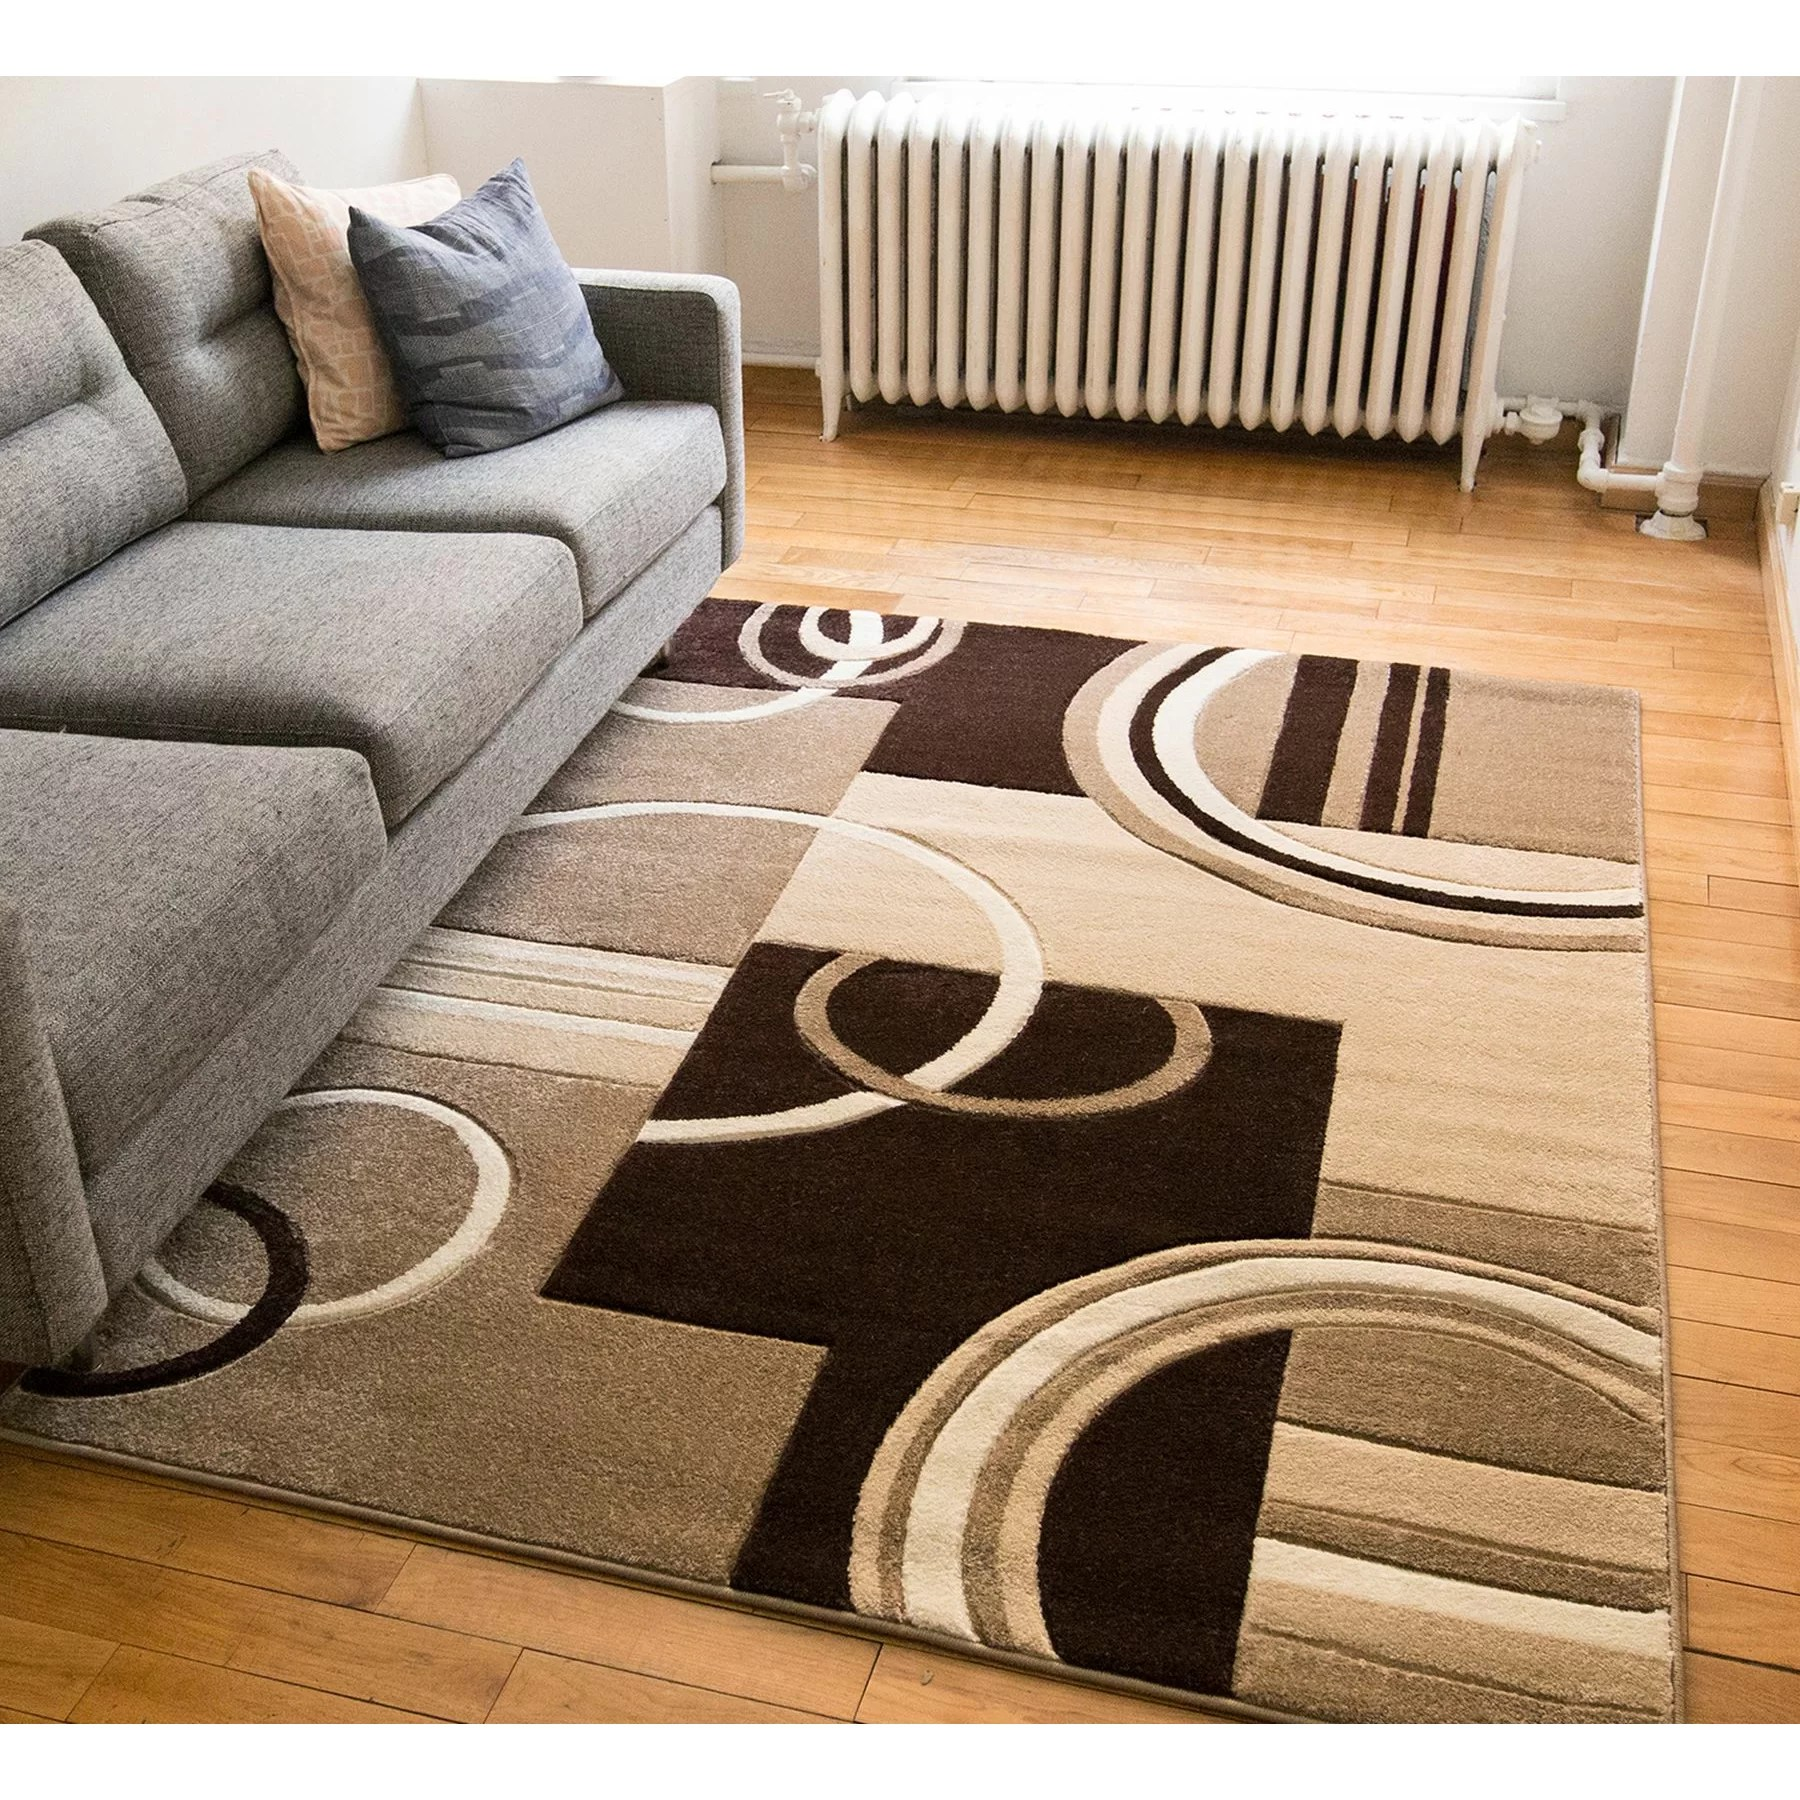 Contemporary Area Rugs Well Woven Ruby Galaxy Waves Contemporary Area Rug